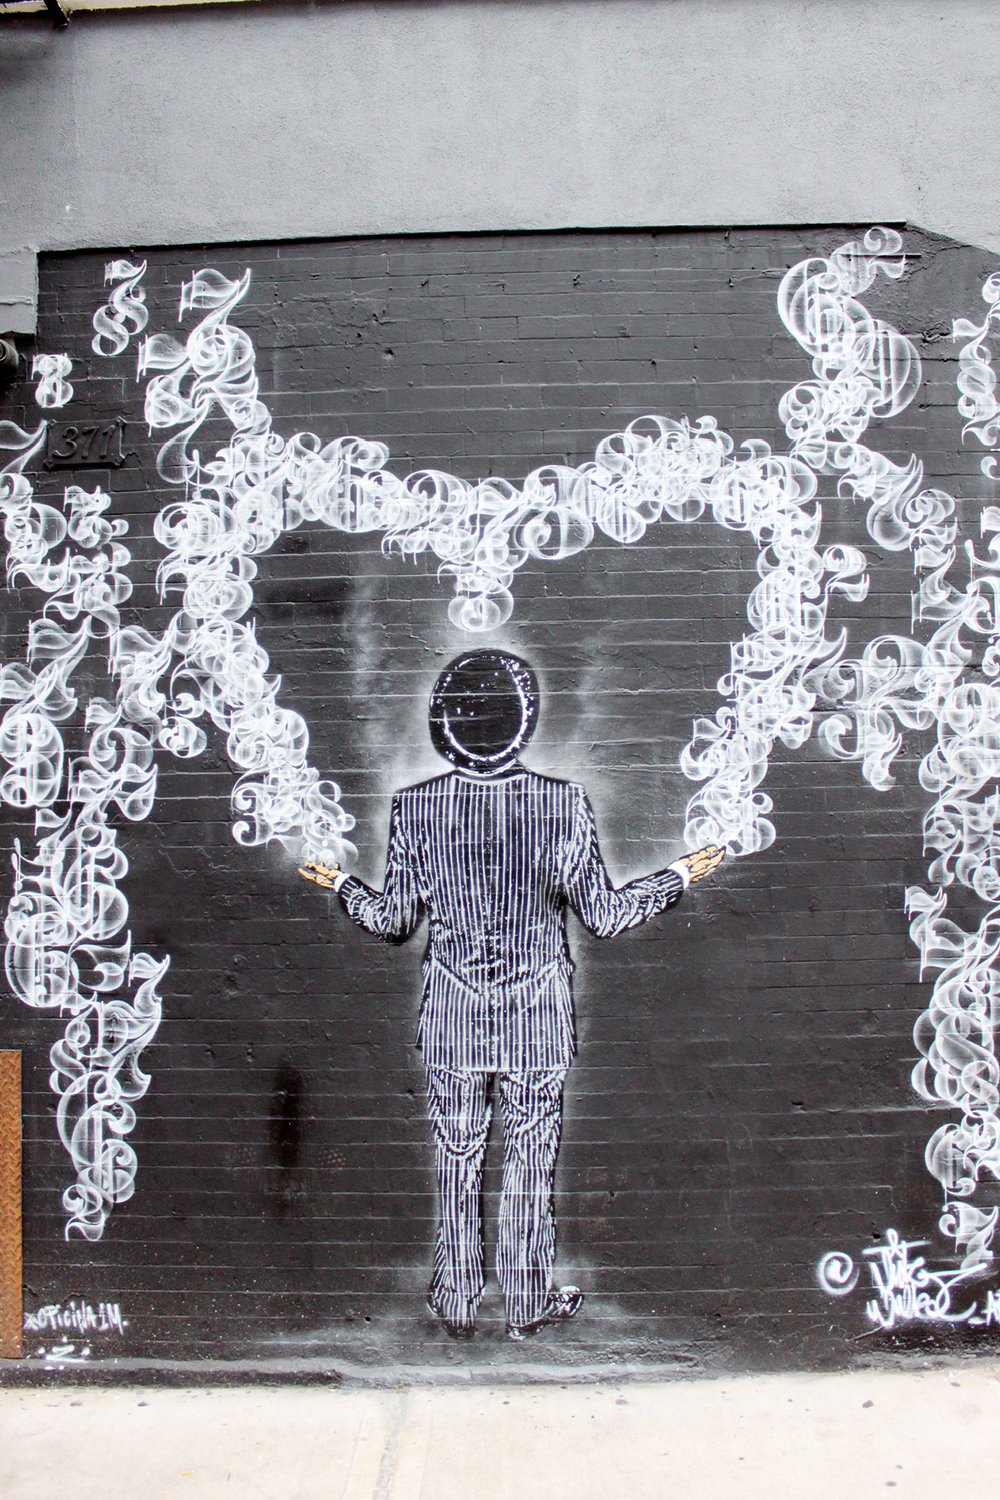 Nick Walker | Oficina1M @ 371 Broome St -